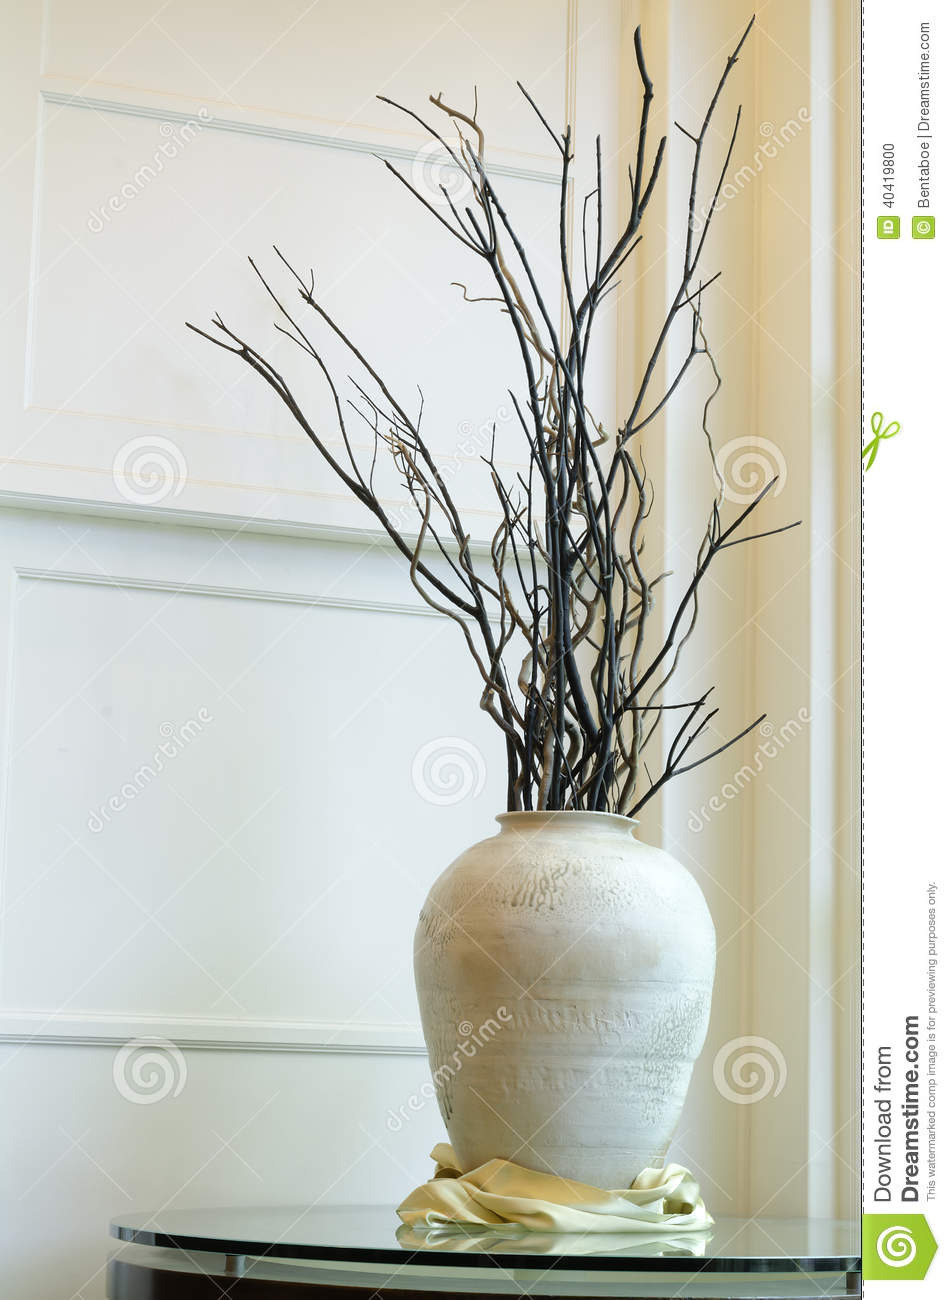 grand vase avec les branches s ches photo stock image. Black Bedroom Furniture Sets. Home Design Ideas